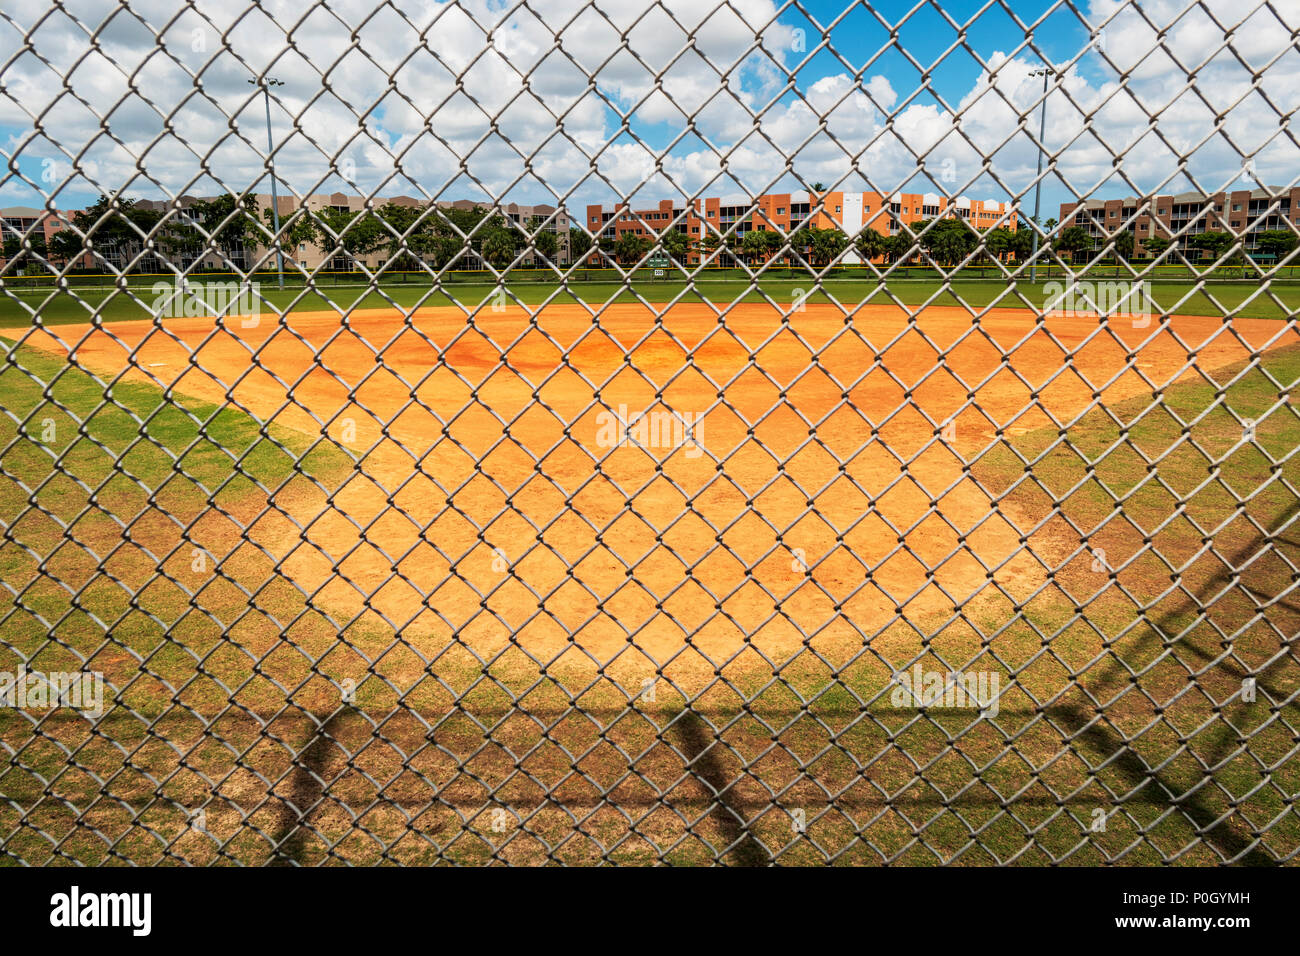 chain link cyclone fence stock photos chain link cyclone fence